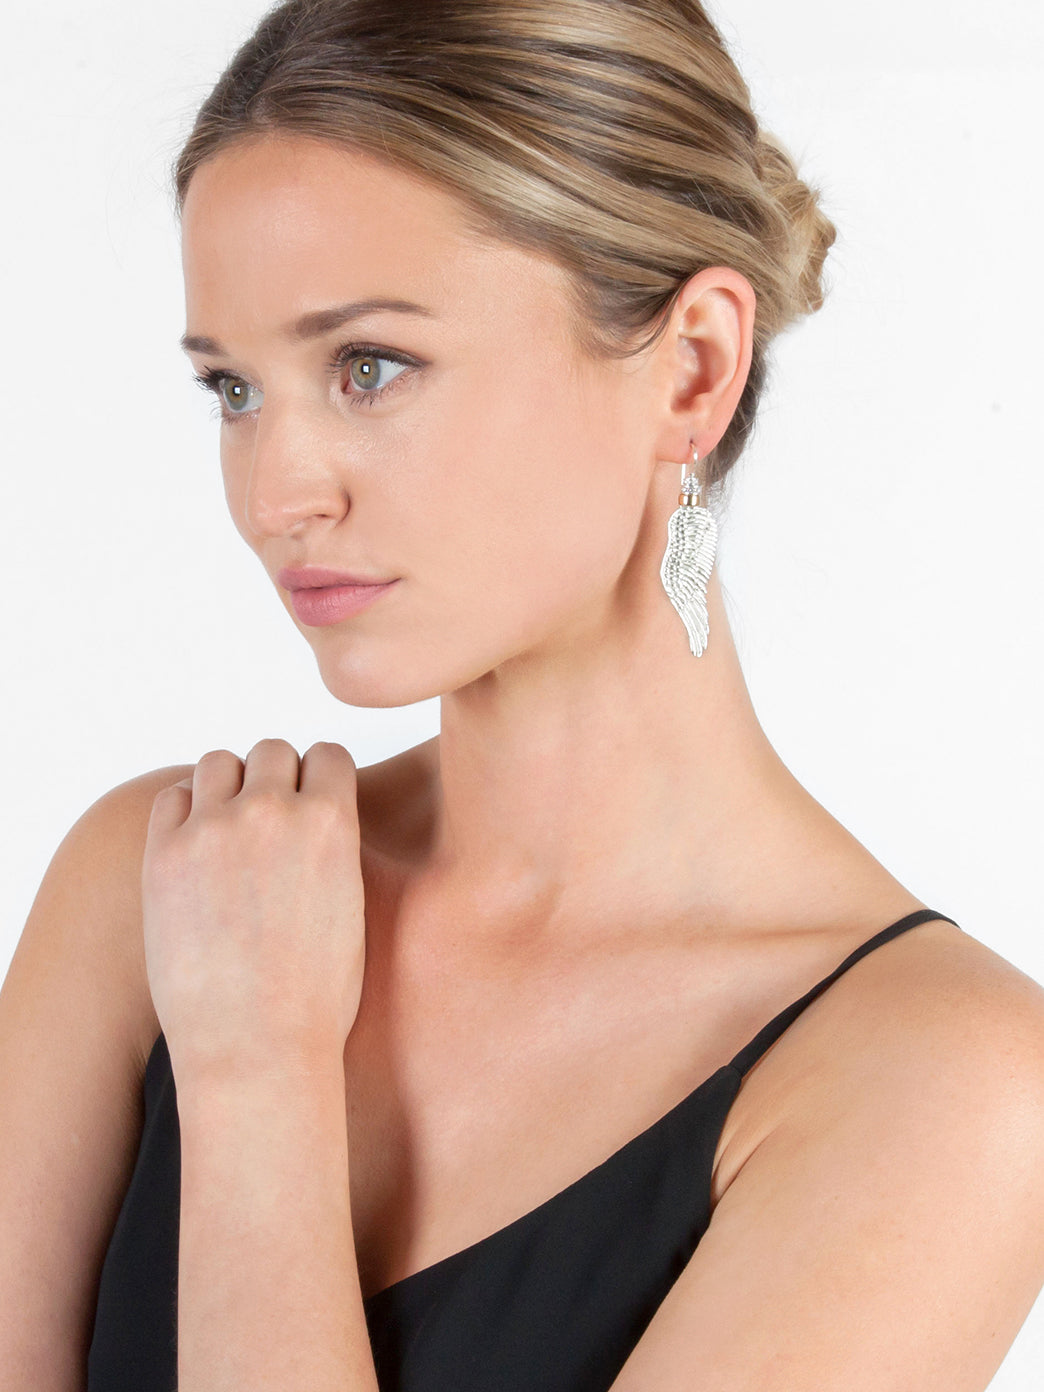 Fiorina Jewellery Aria Earrings Model